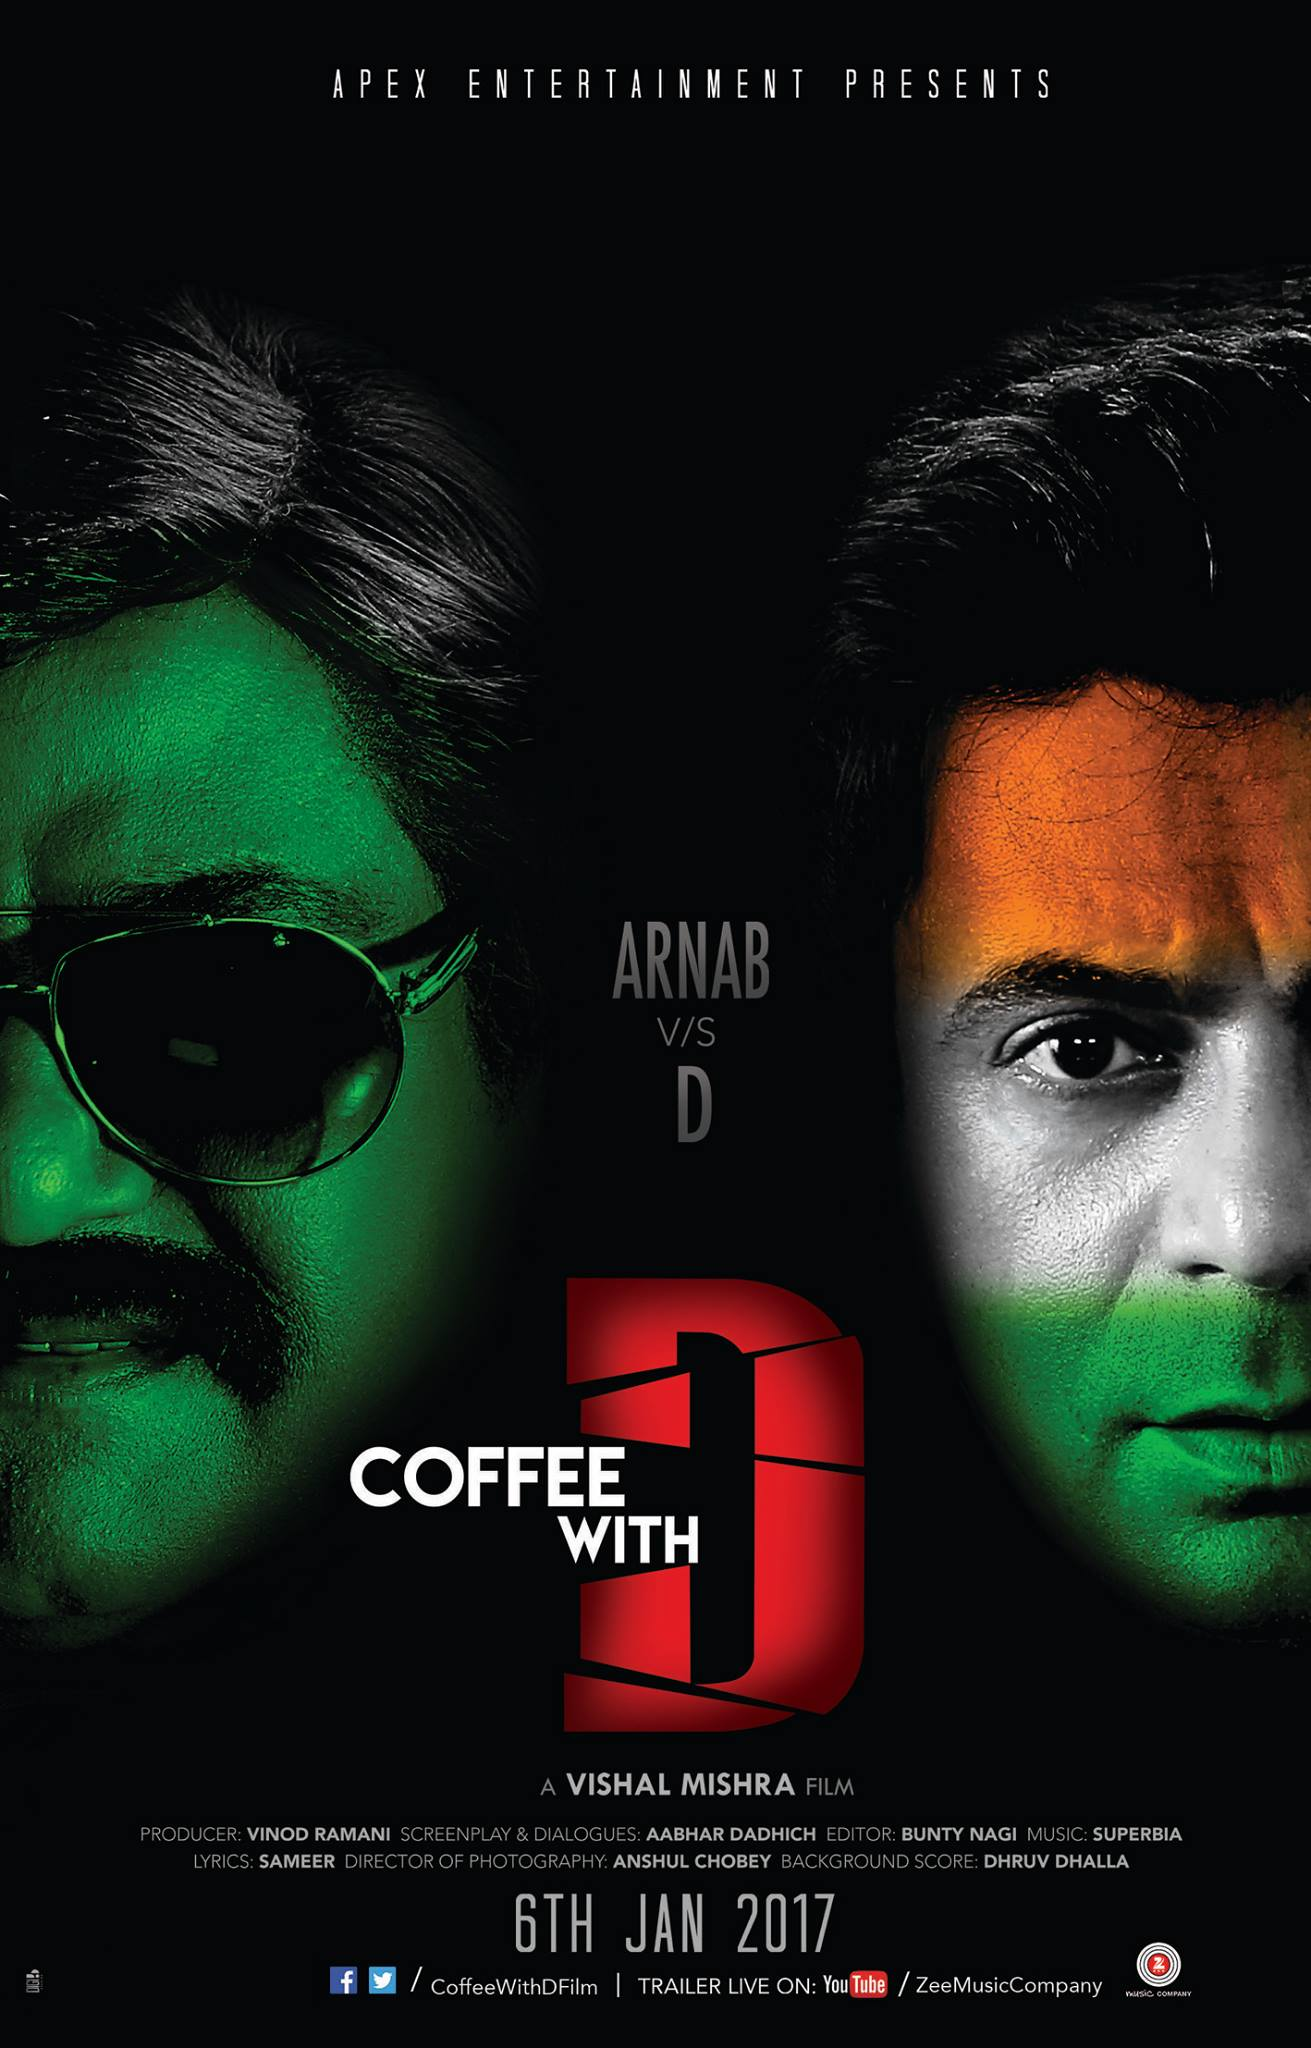 Coffee With D 1st Look Posters & Trailers 8